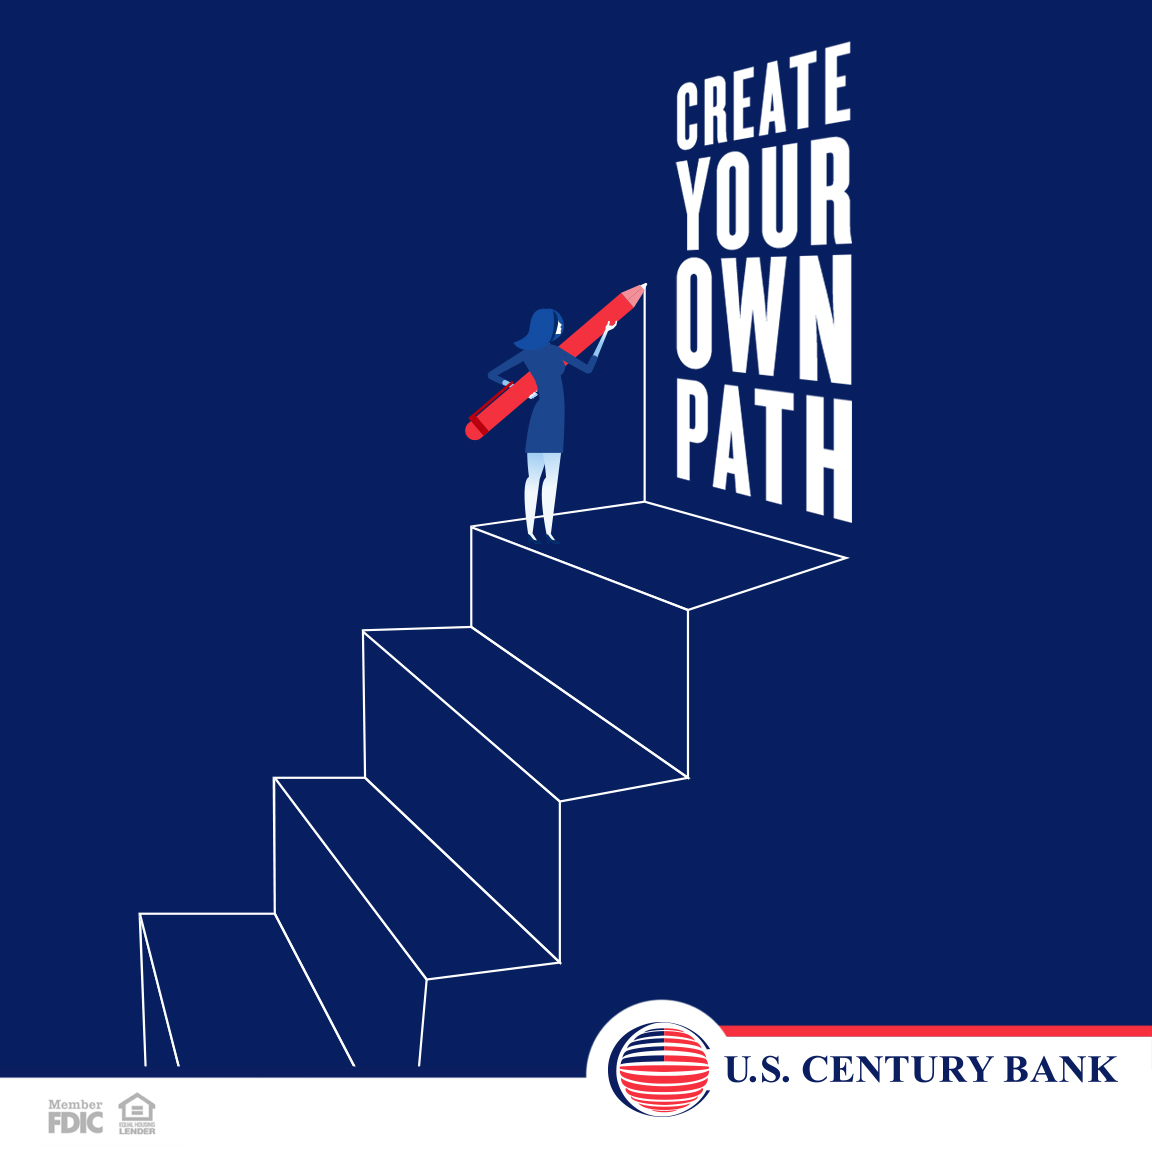 #MOTIVATIONALMONDAY :  There is no ONE way, there is only YOUR WAY - Call or visit us at   305.715.5200 #digitalworld #bankwisely #uscb #southflorida #itsthepeoplethatmakeus #onlinebanking #bankfromhome #stayconnected #motivationalmonday#sba#ventureoff